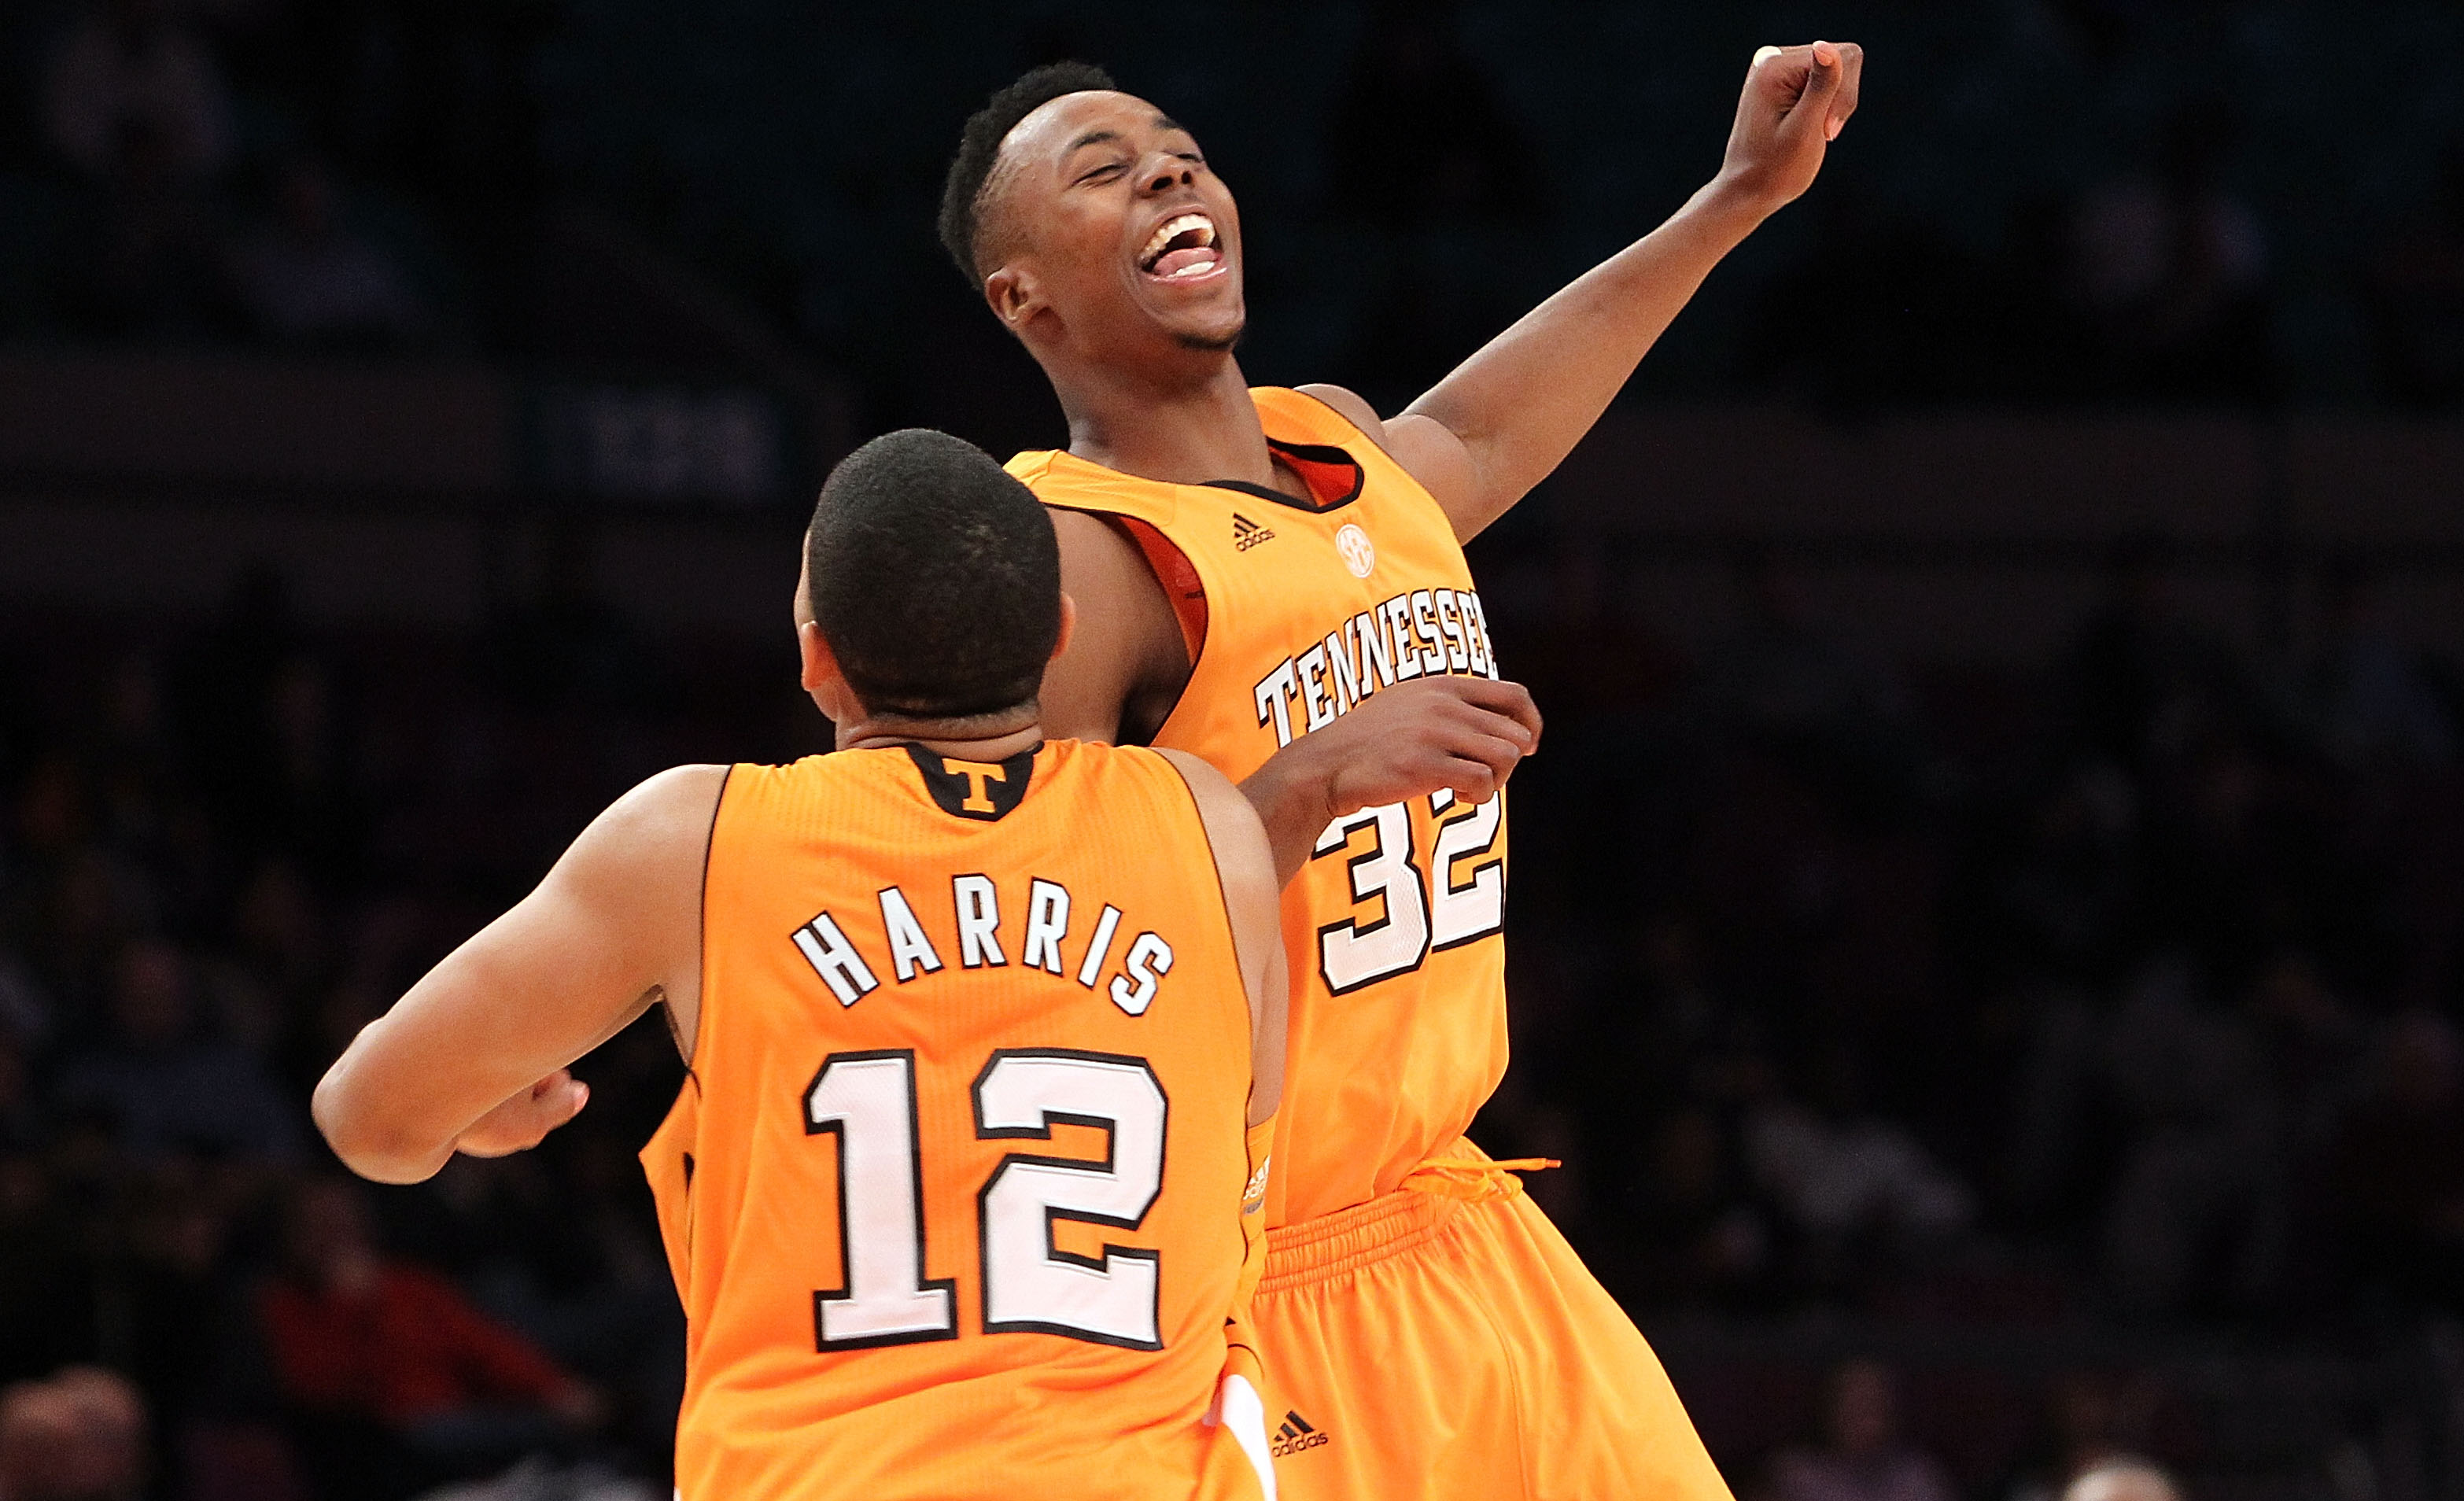 NEW YORK - NOVEMBER 26:  Tobias Harris #12 of the Tennessee Volunteers celebrates a basket with teammate Scotty Hopson #32 against the Villanova Wildcats  during the Championship game at Madison Square Garden on November 26, 2010 in New York City.  (Photo